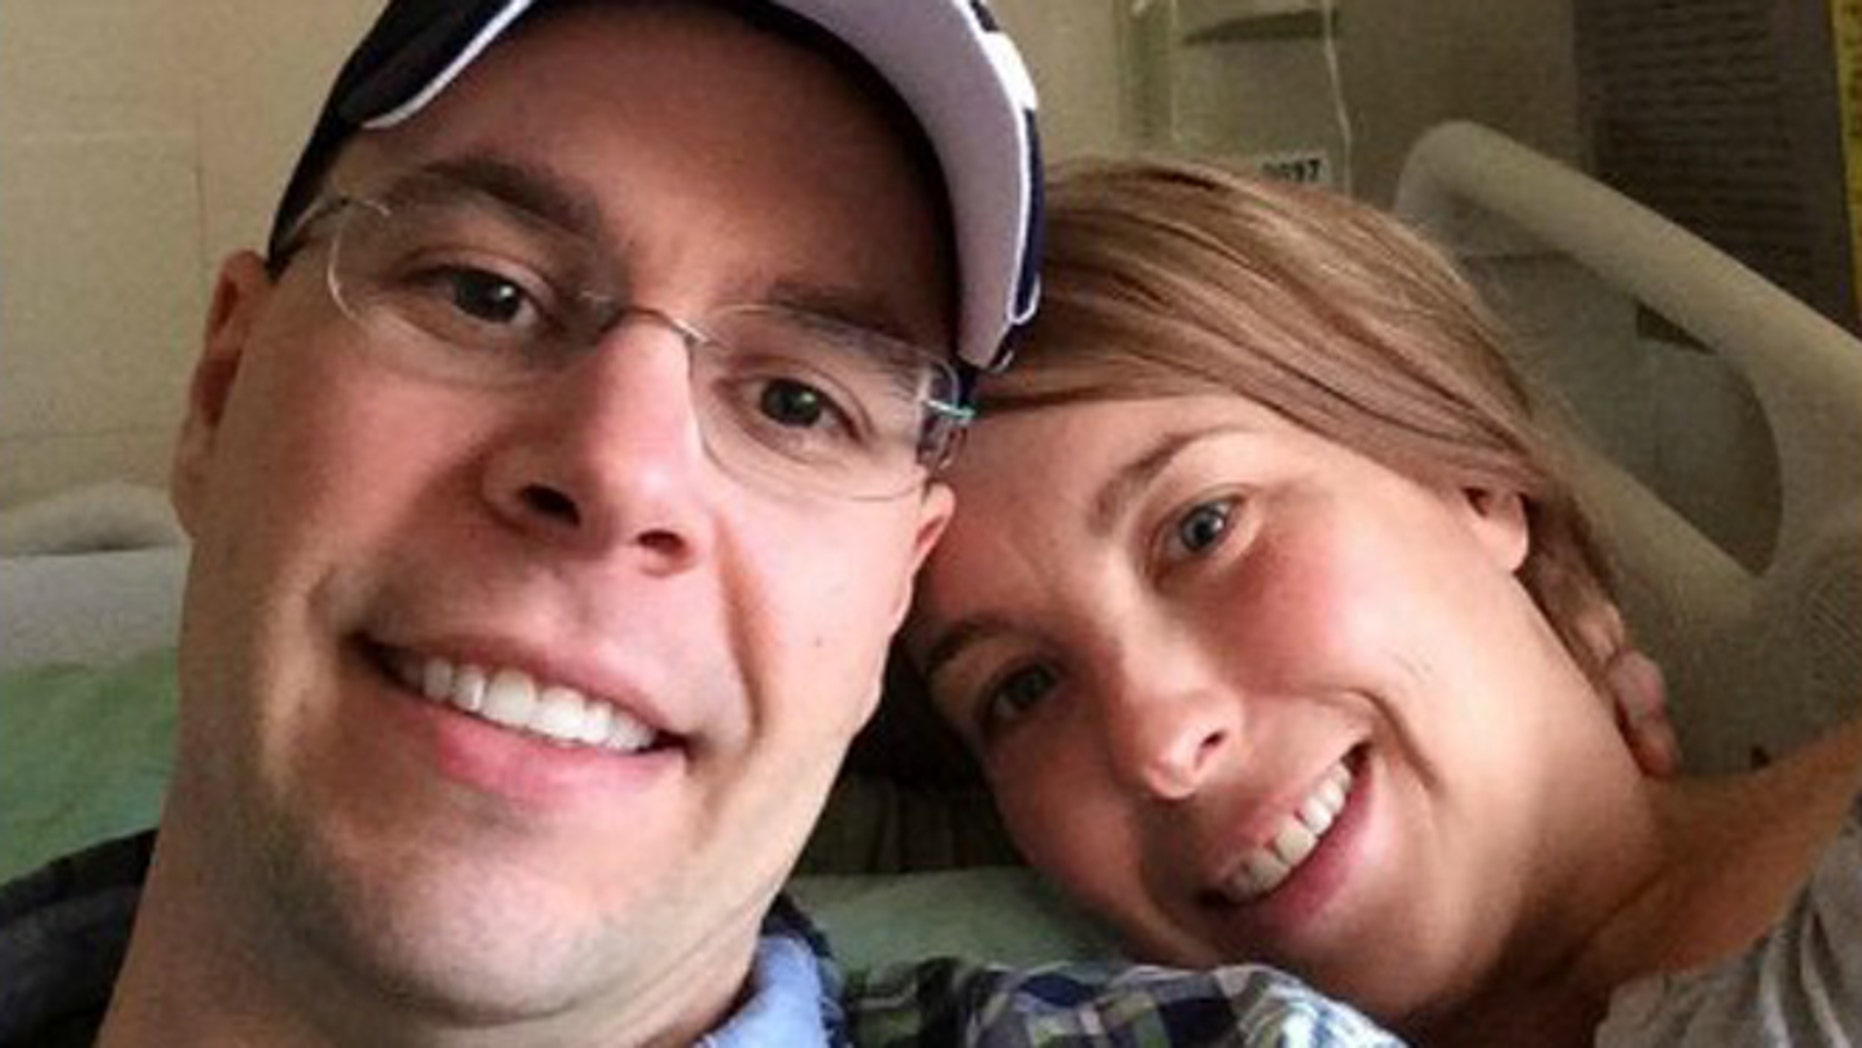 Christian Willenborg donated a kidney to his fiance, Errin Tollefson.